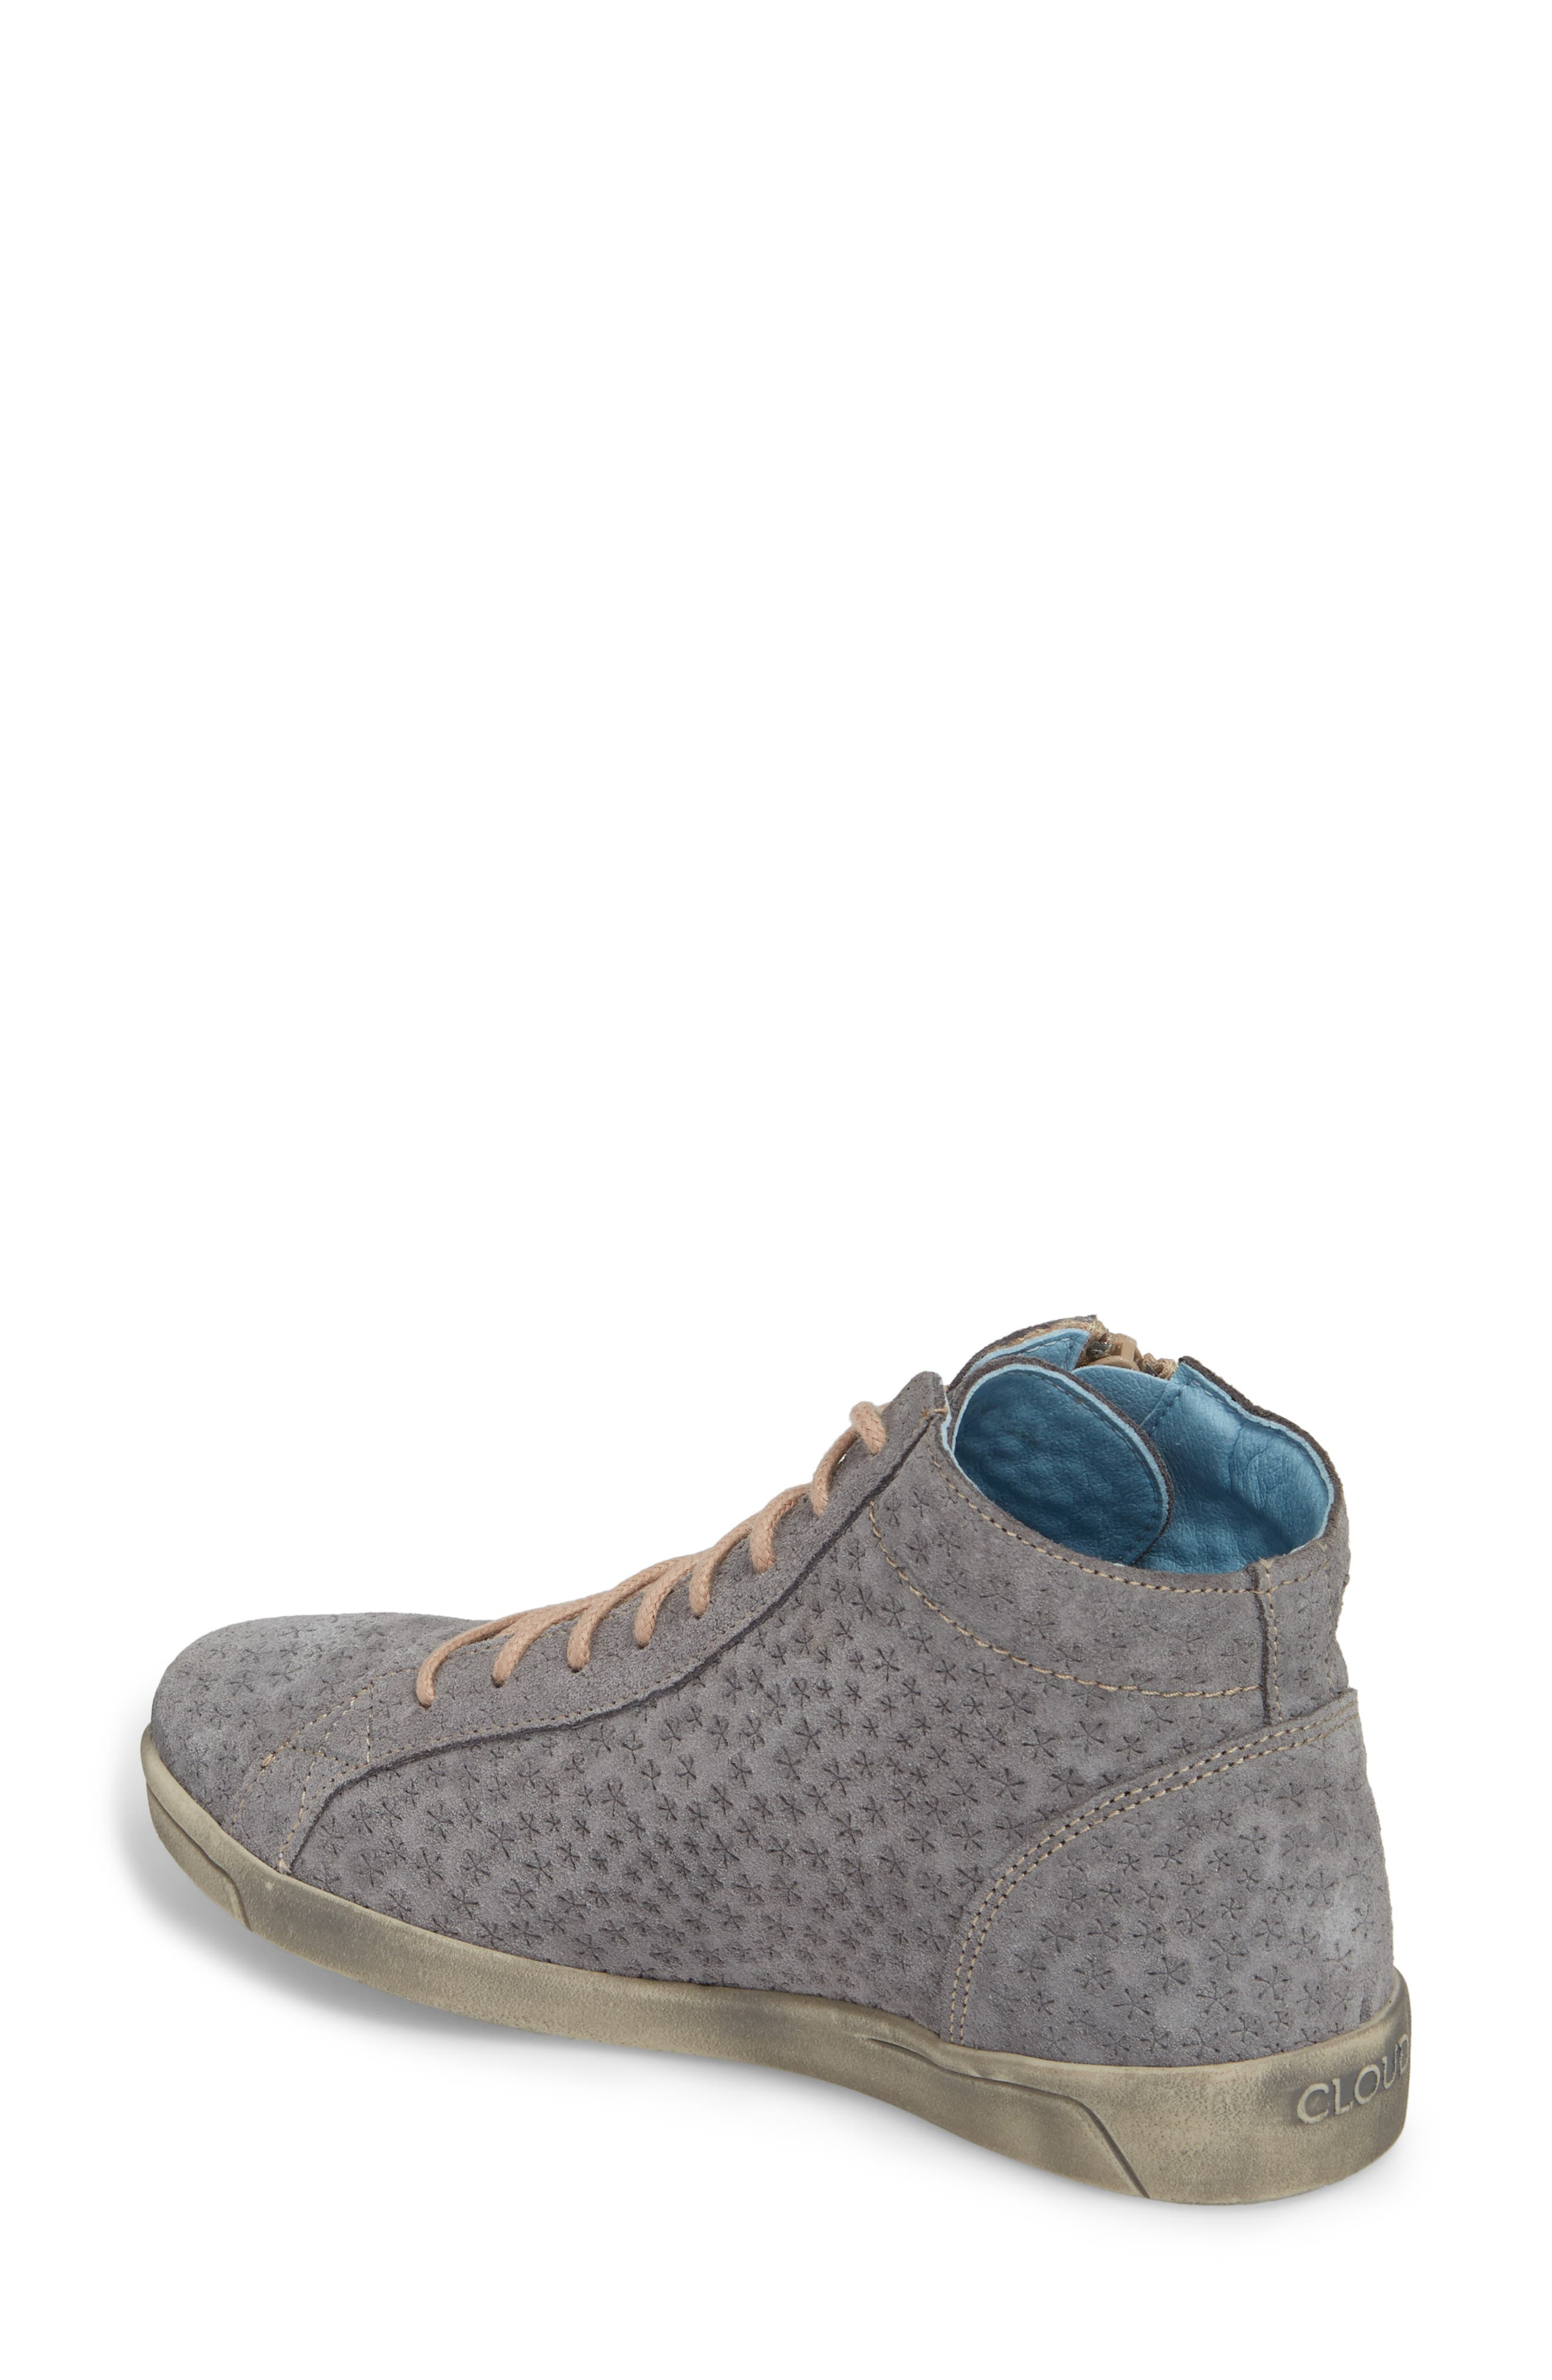 Aika Star Perforated High Top Sneaker,                             Alternate thumbnail 2, color,                             Grey Leather